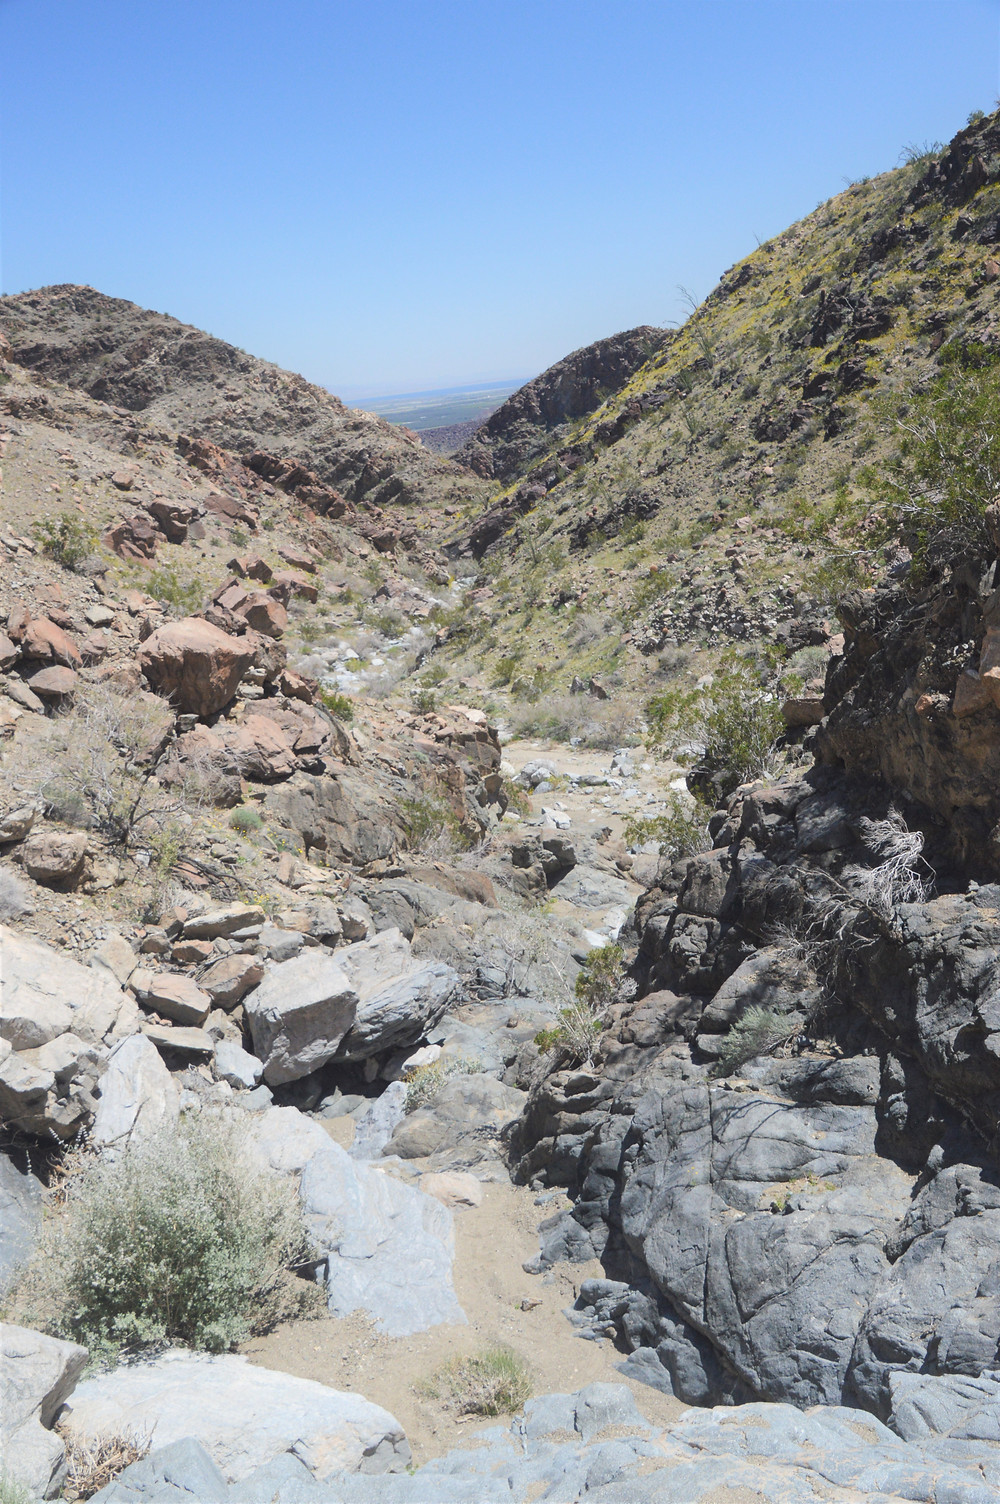 View from the rock wall looking back at Lost Canyon in the Santa Rosa Mountains